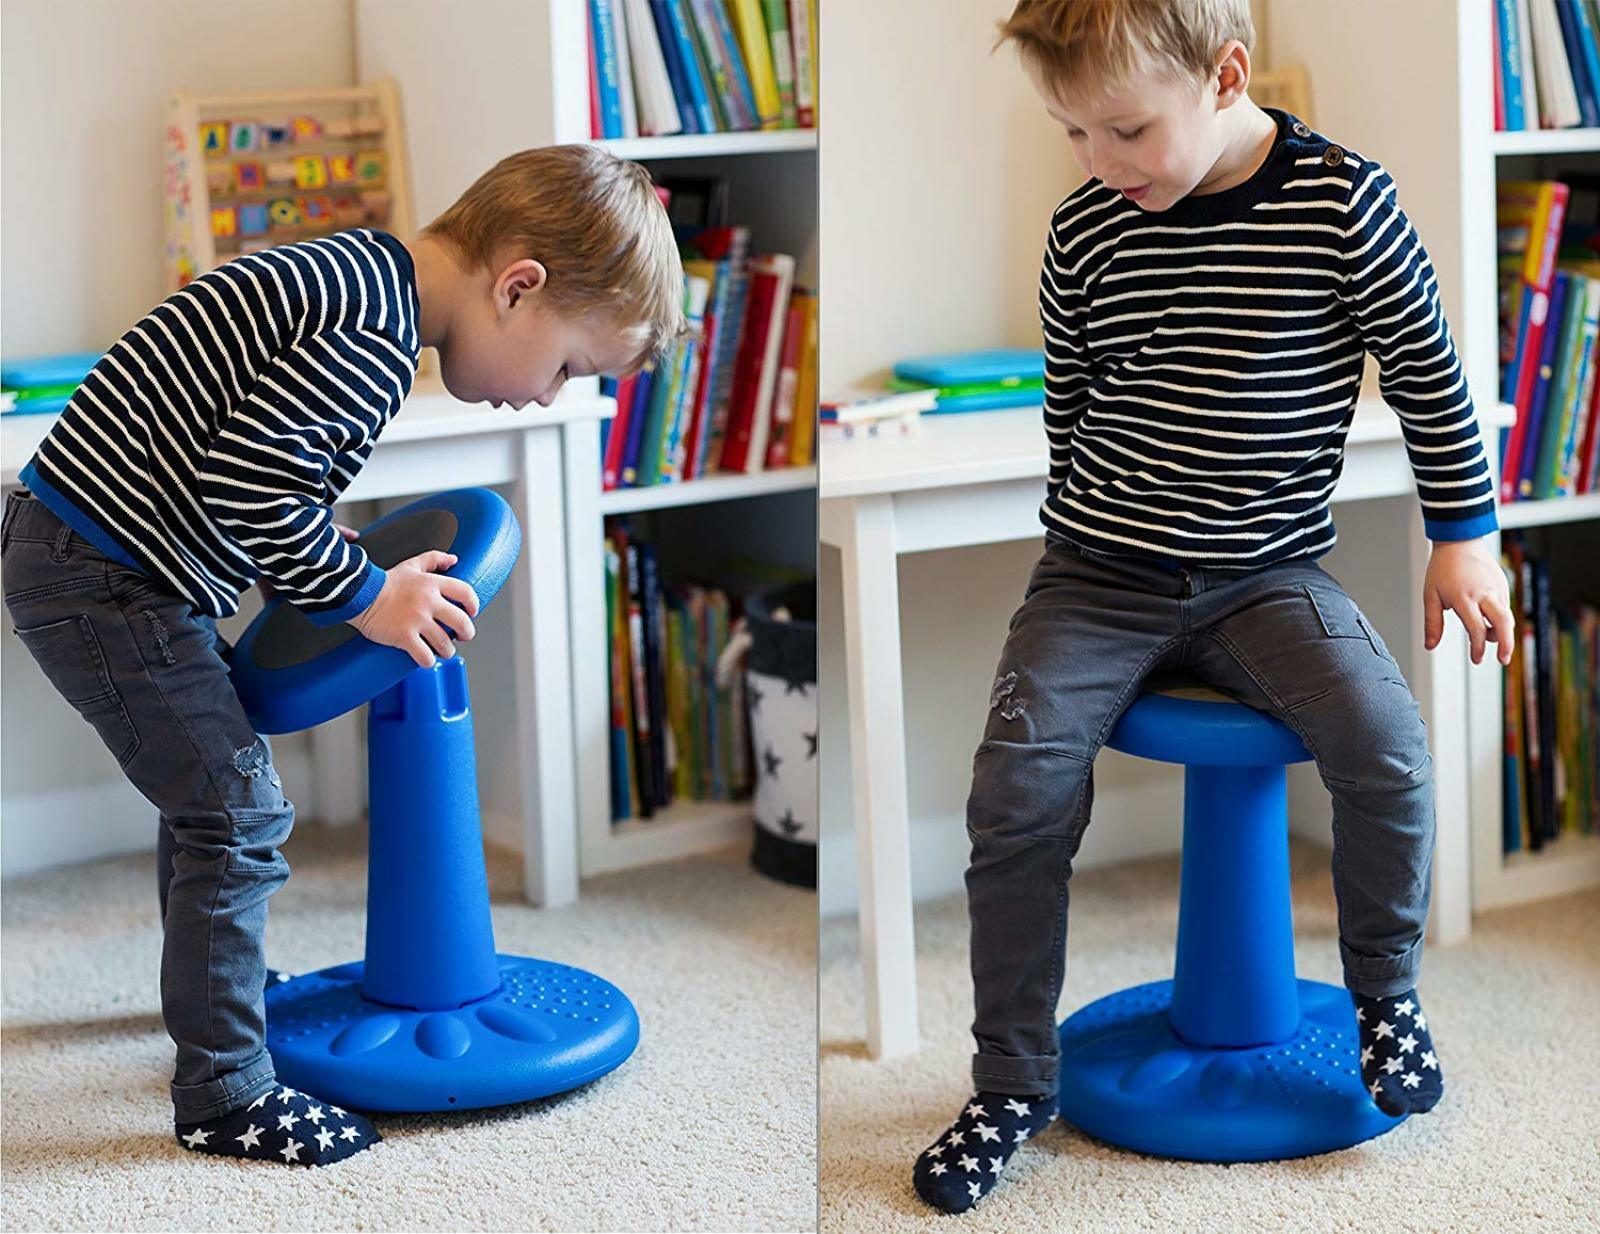 Remarkable Details About 14 Kids Active Chair Flexible Non Slip Corrects Posture Ages 3 7 Years Blue New Unemploymentrelief Wooden Chair Designs For Living Room Unemploymentrelieforg